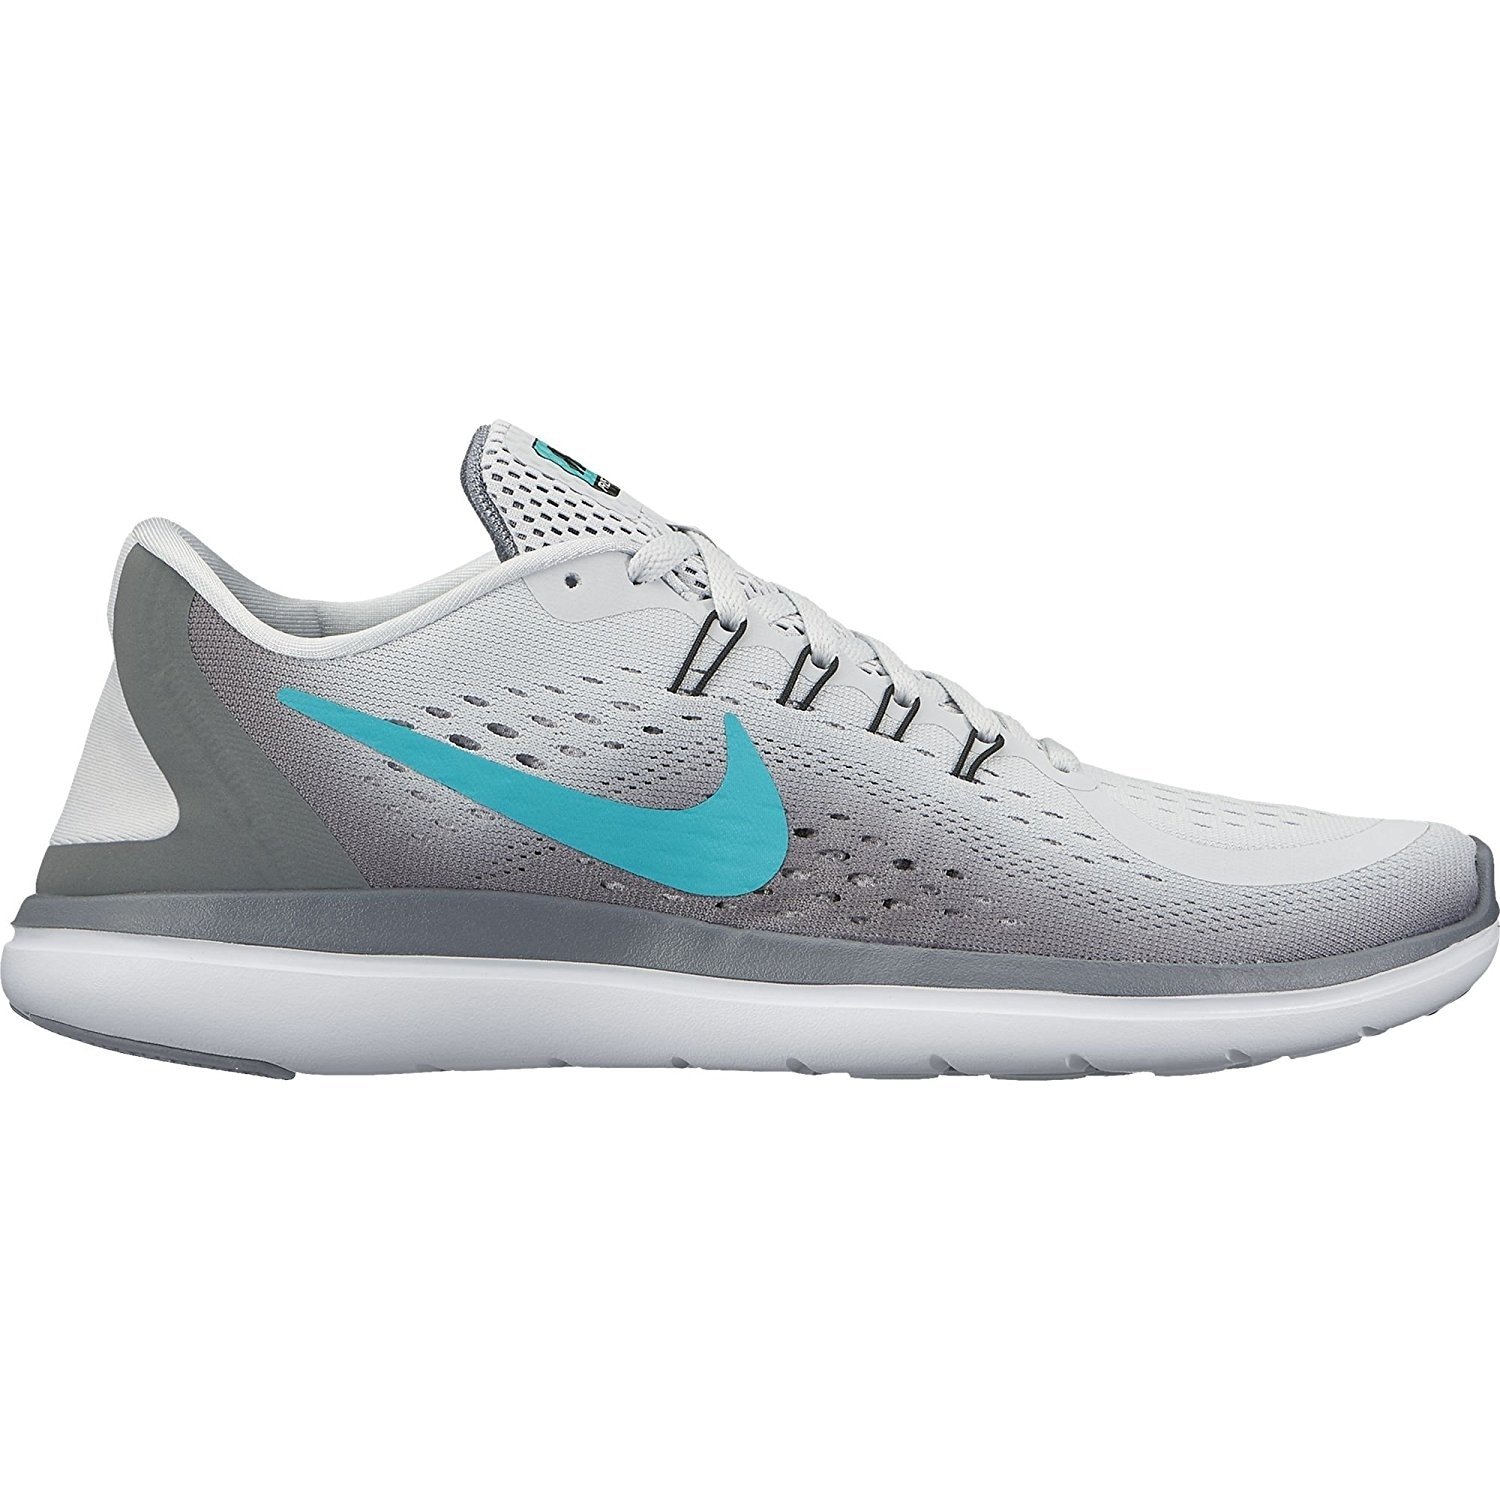 premium selection 1e42a 78c77 Shop Nike Women s Flex 2017 Running Shoes Pure Platinum  Clear Jade-Grey  Black - Free Shipping Today - Overstock - 17949926